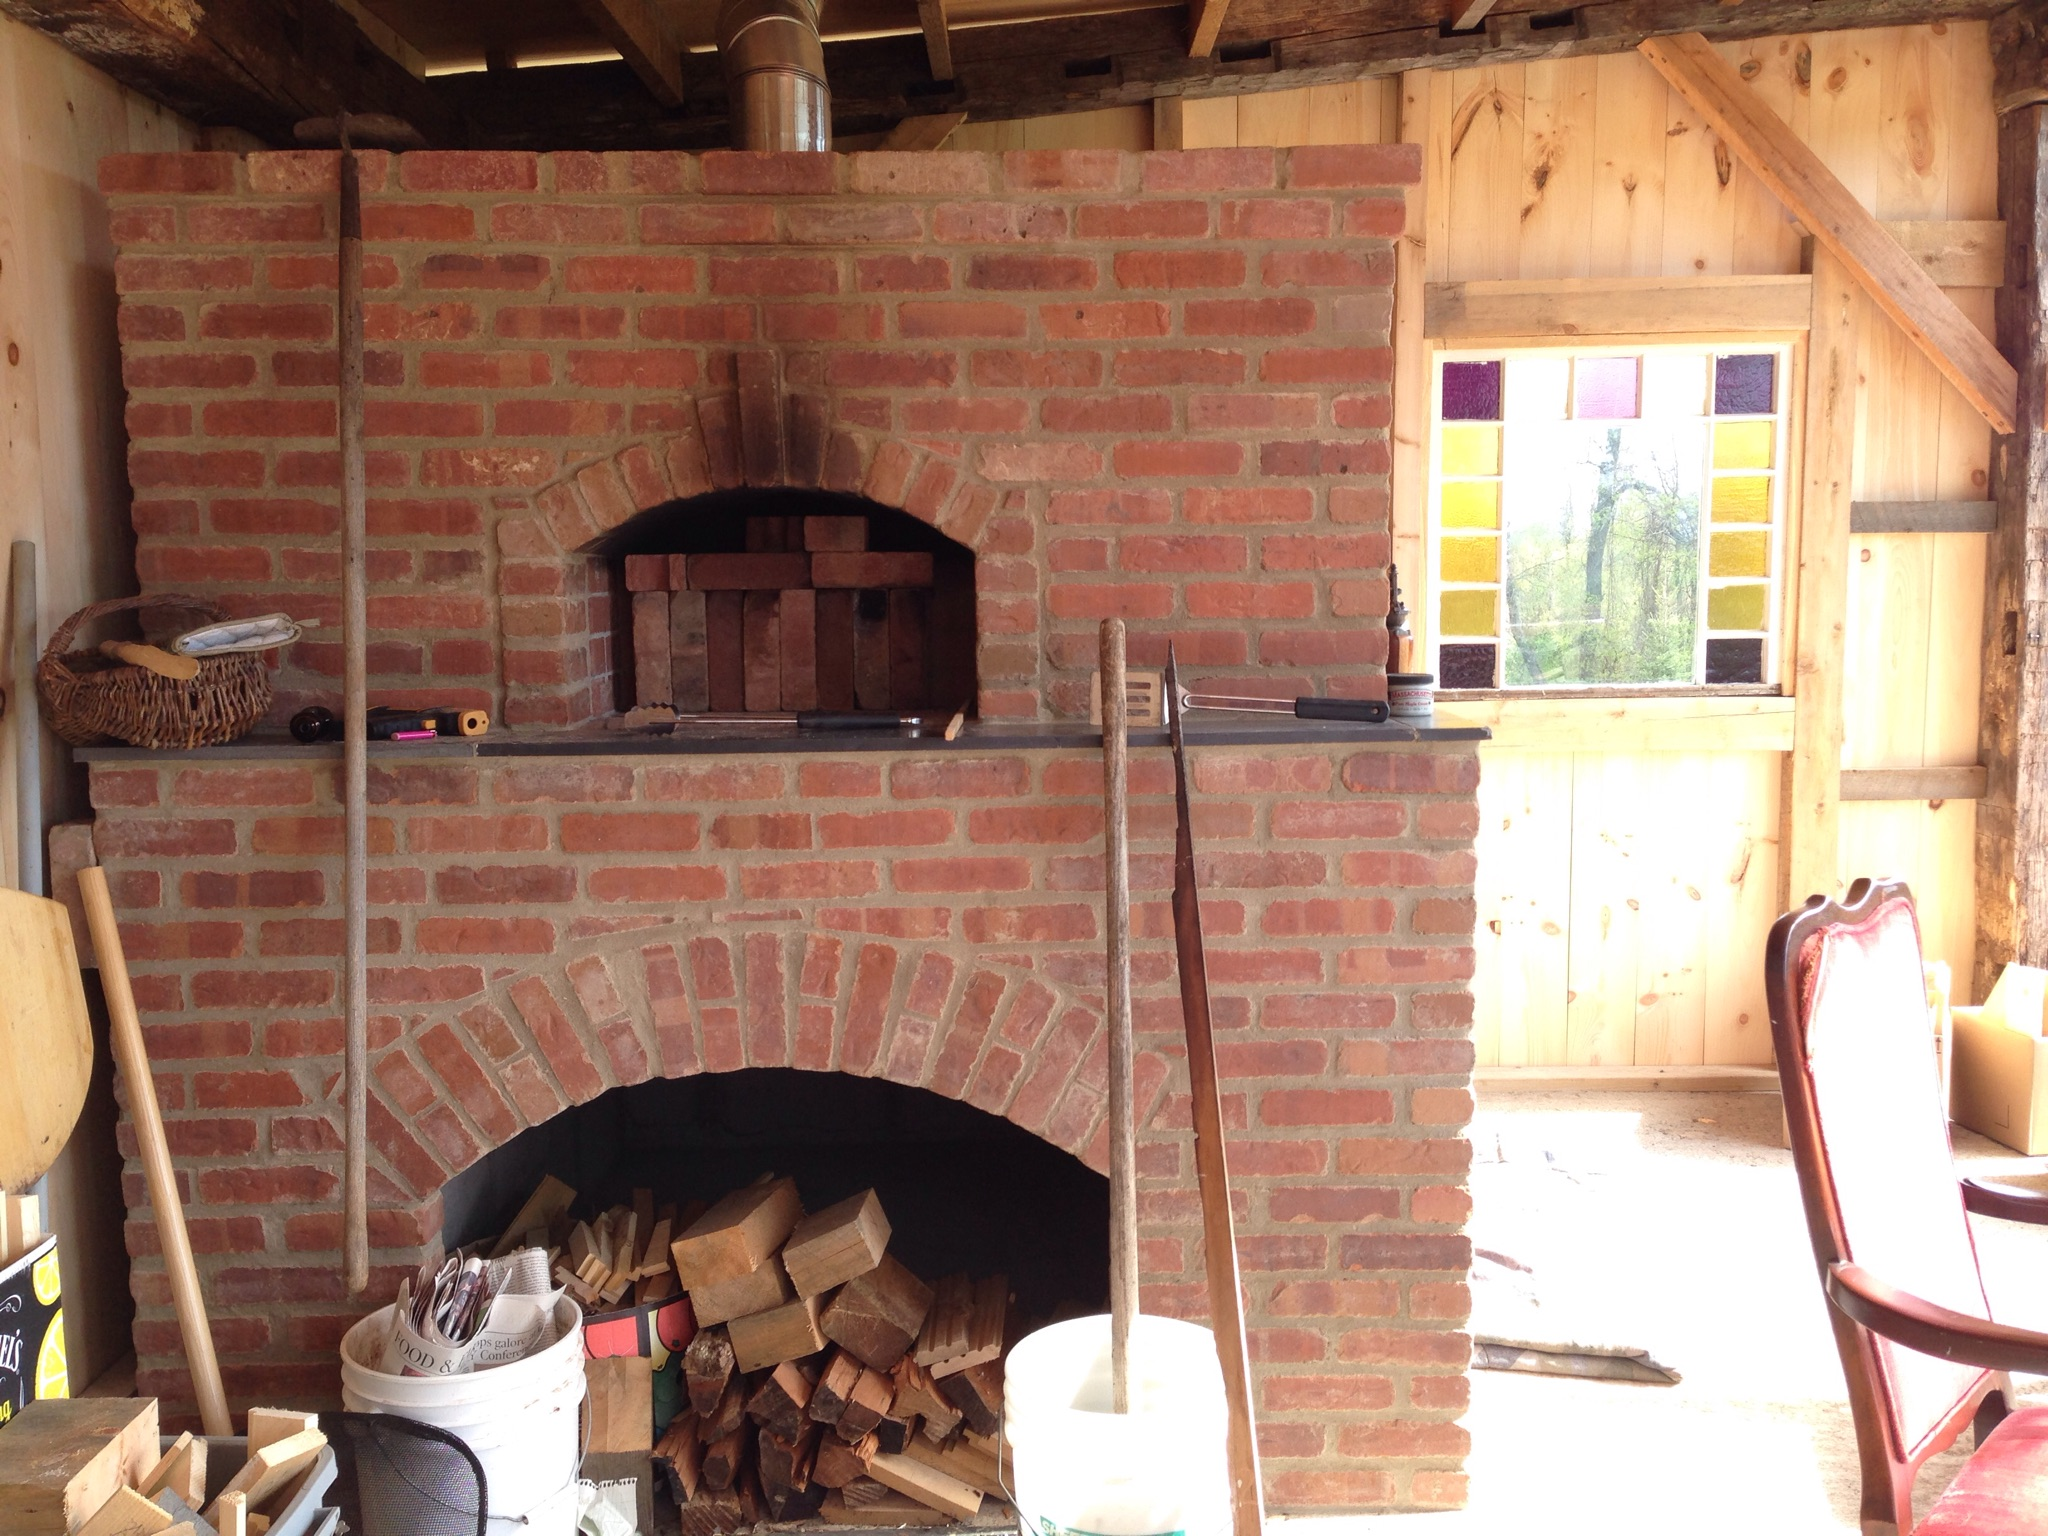 A brick oven built at Everyday Farm in Gill, MA